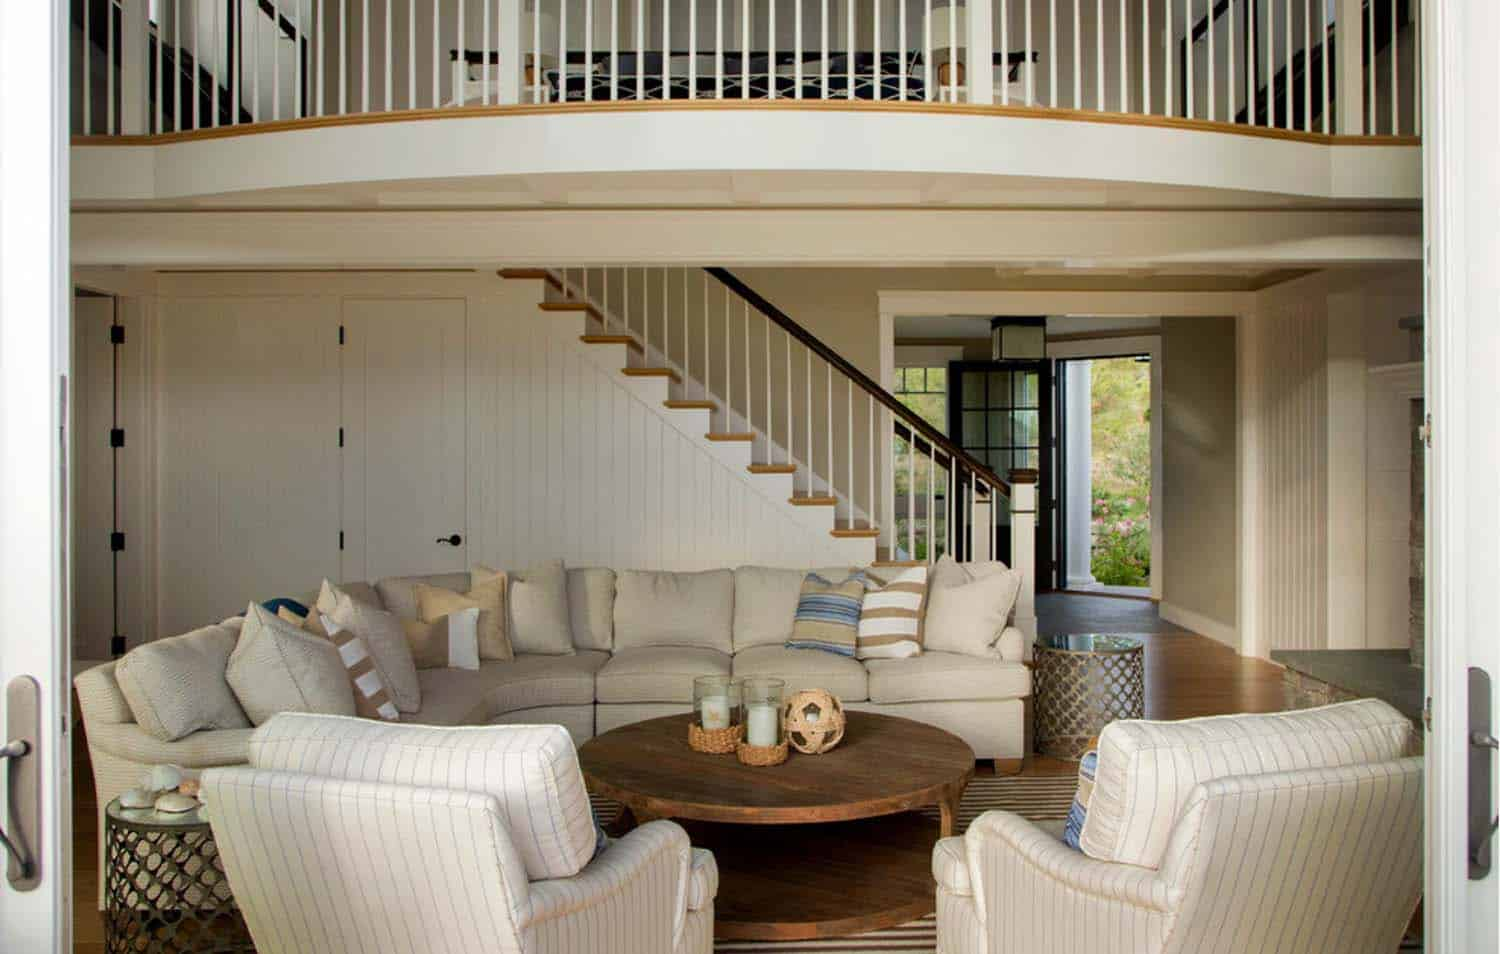 Beach House-Marthas Vineyard Interior Design-03-1 Kindesign